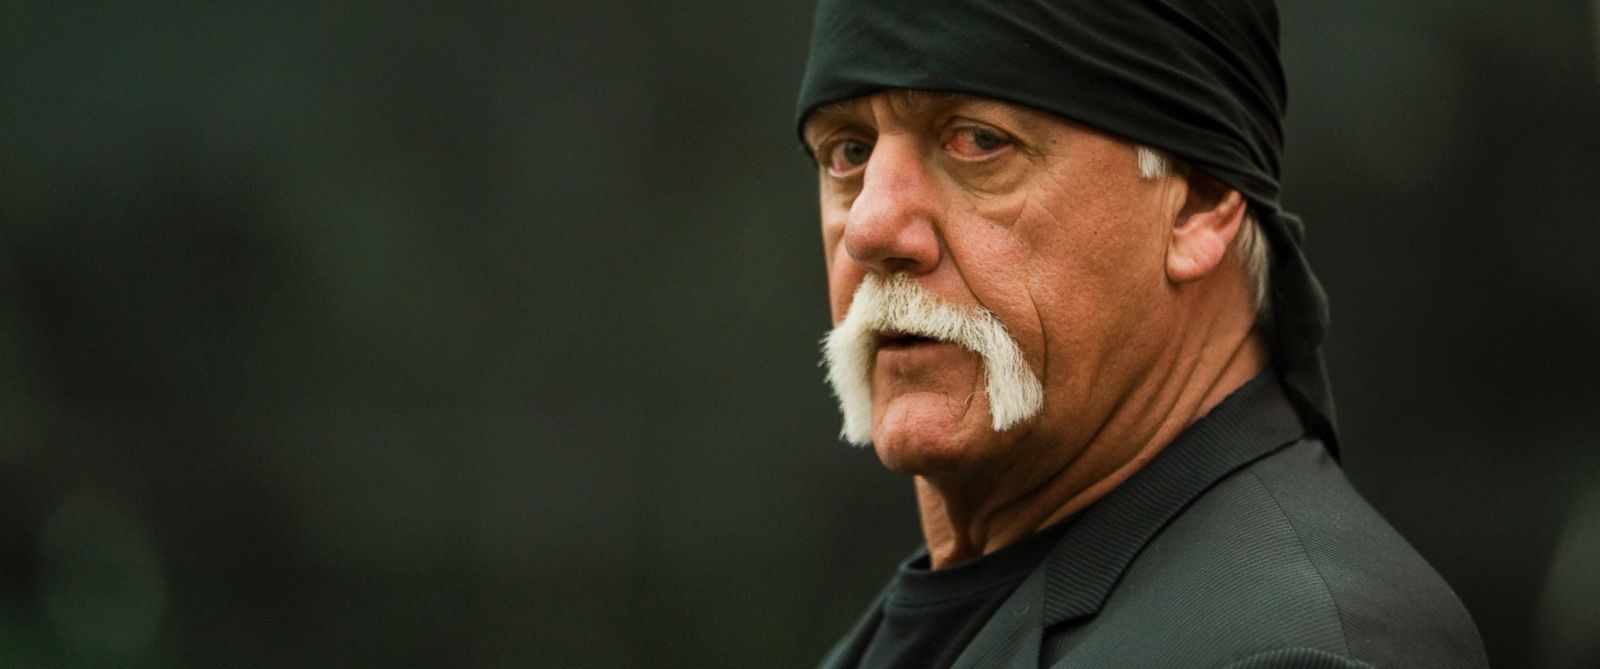 PHOTO: Former professional wrestler Hulk Hogan arrives in the courtroom, March 16, 2016, in St. Petersburg, Fla.